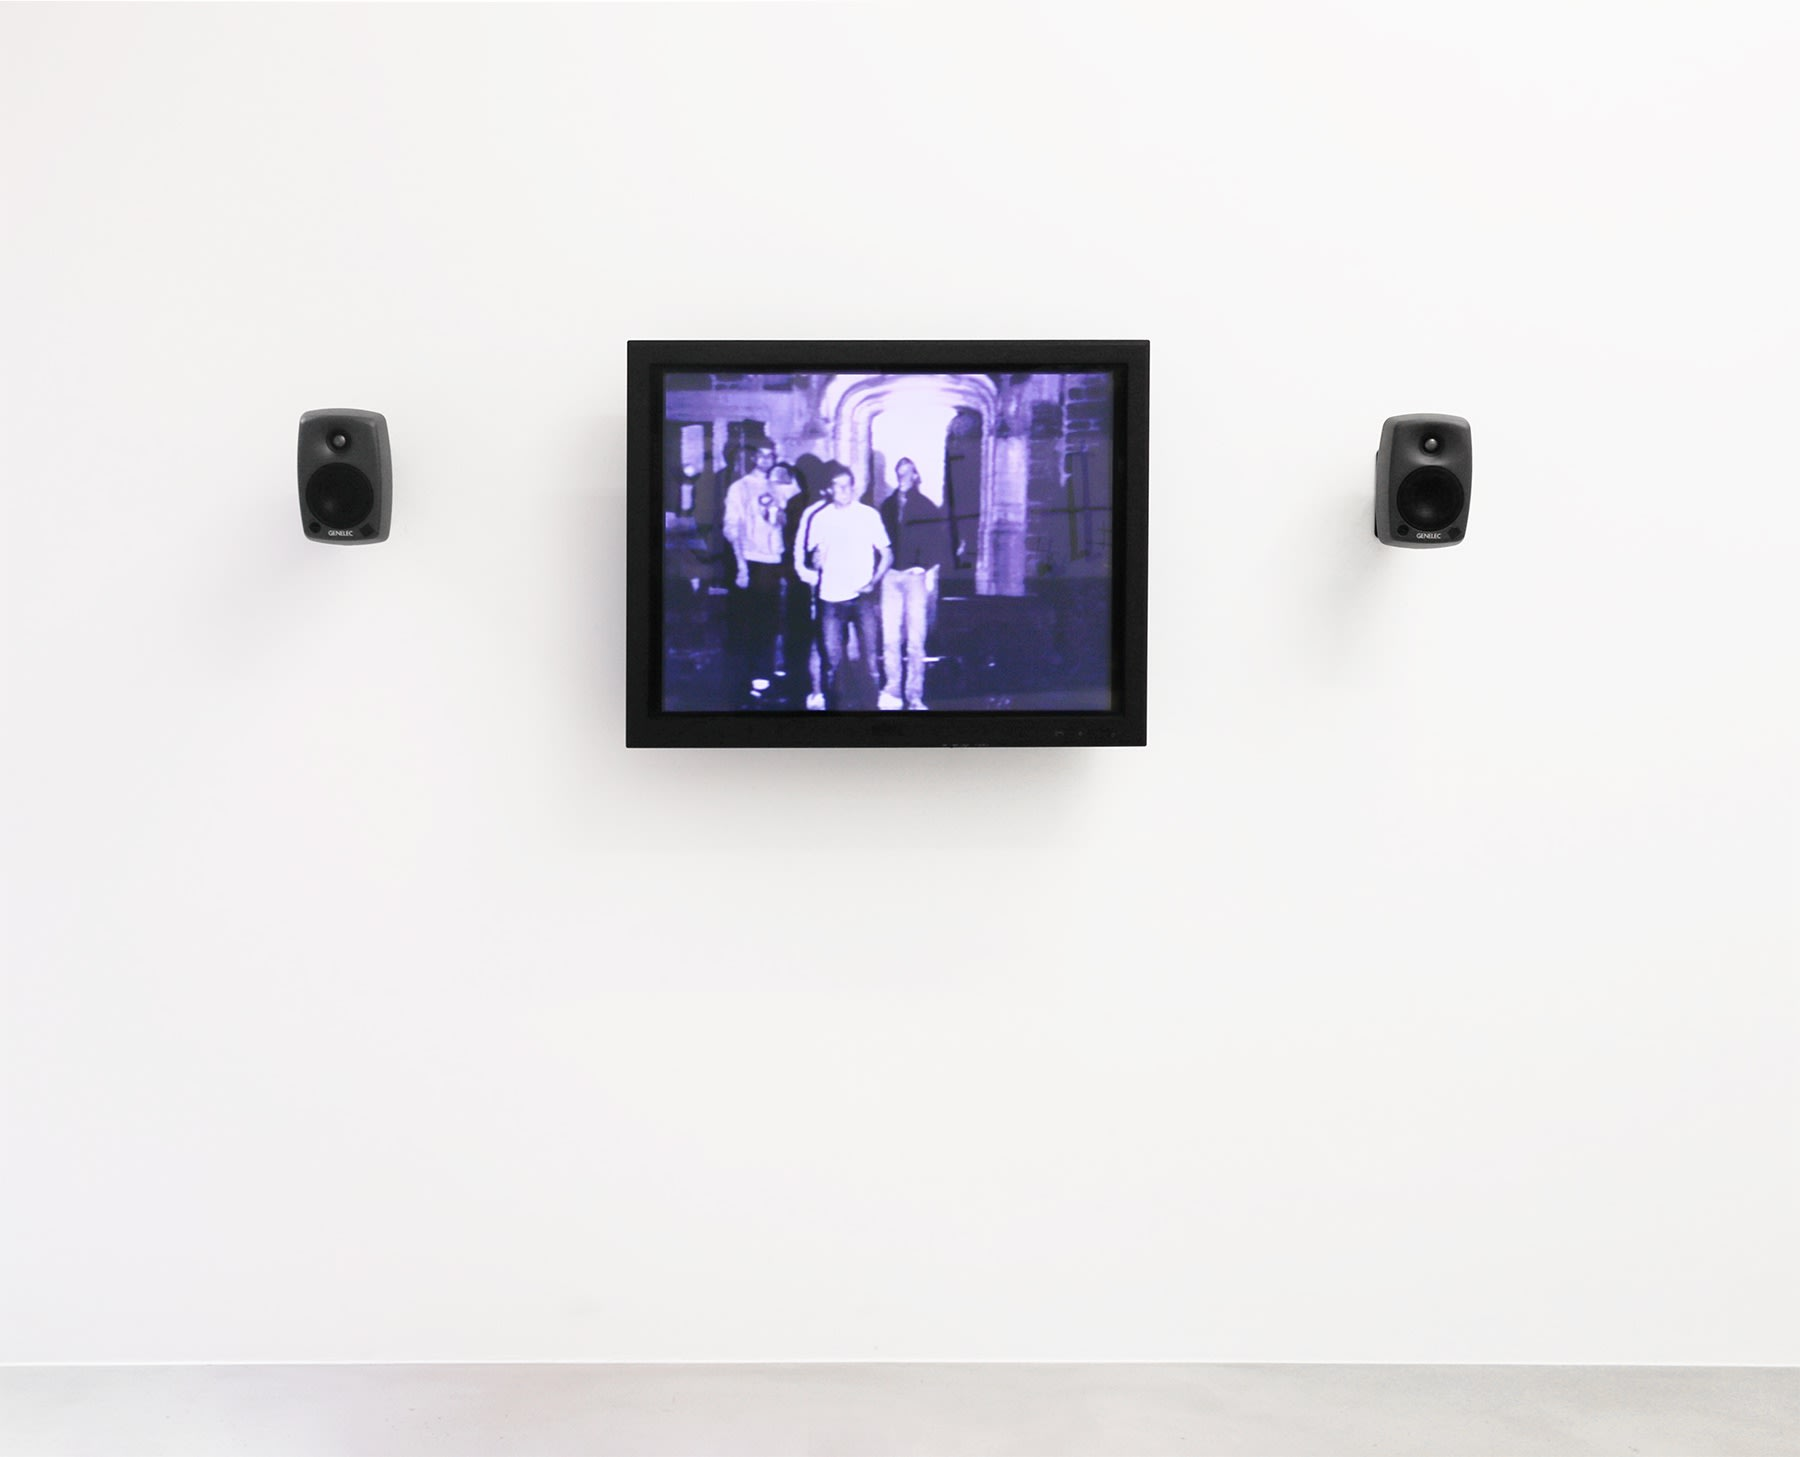 A purple monitor with 2 speakers displays an image of figures gathered outside.